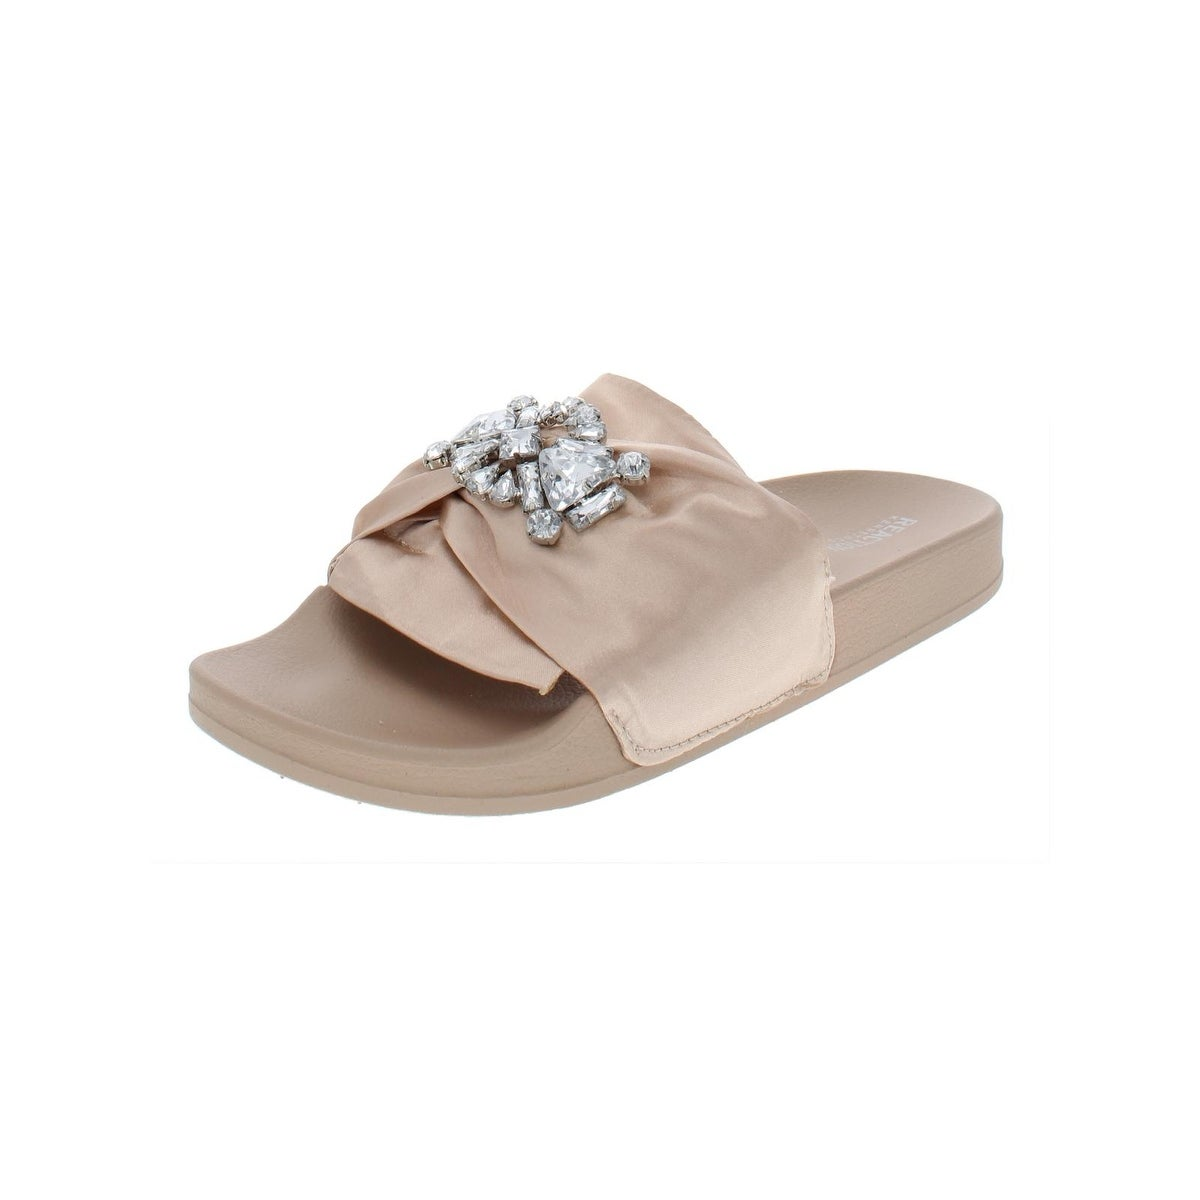 274c44c2cb49 Buy Kenneth Cole Reaction Women s Sandals Online at Overstock